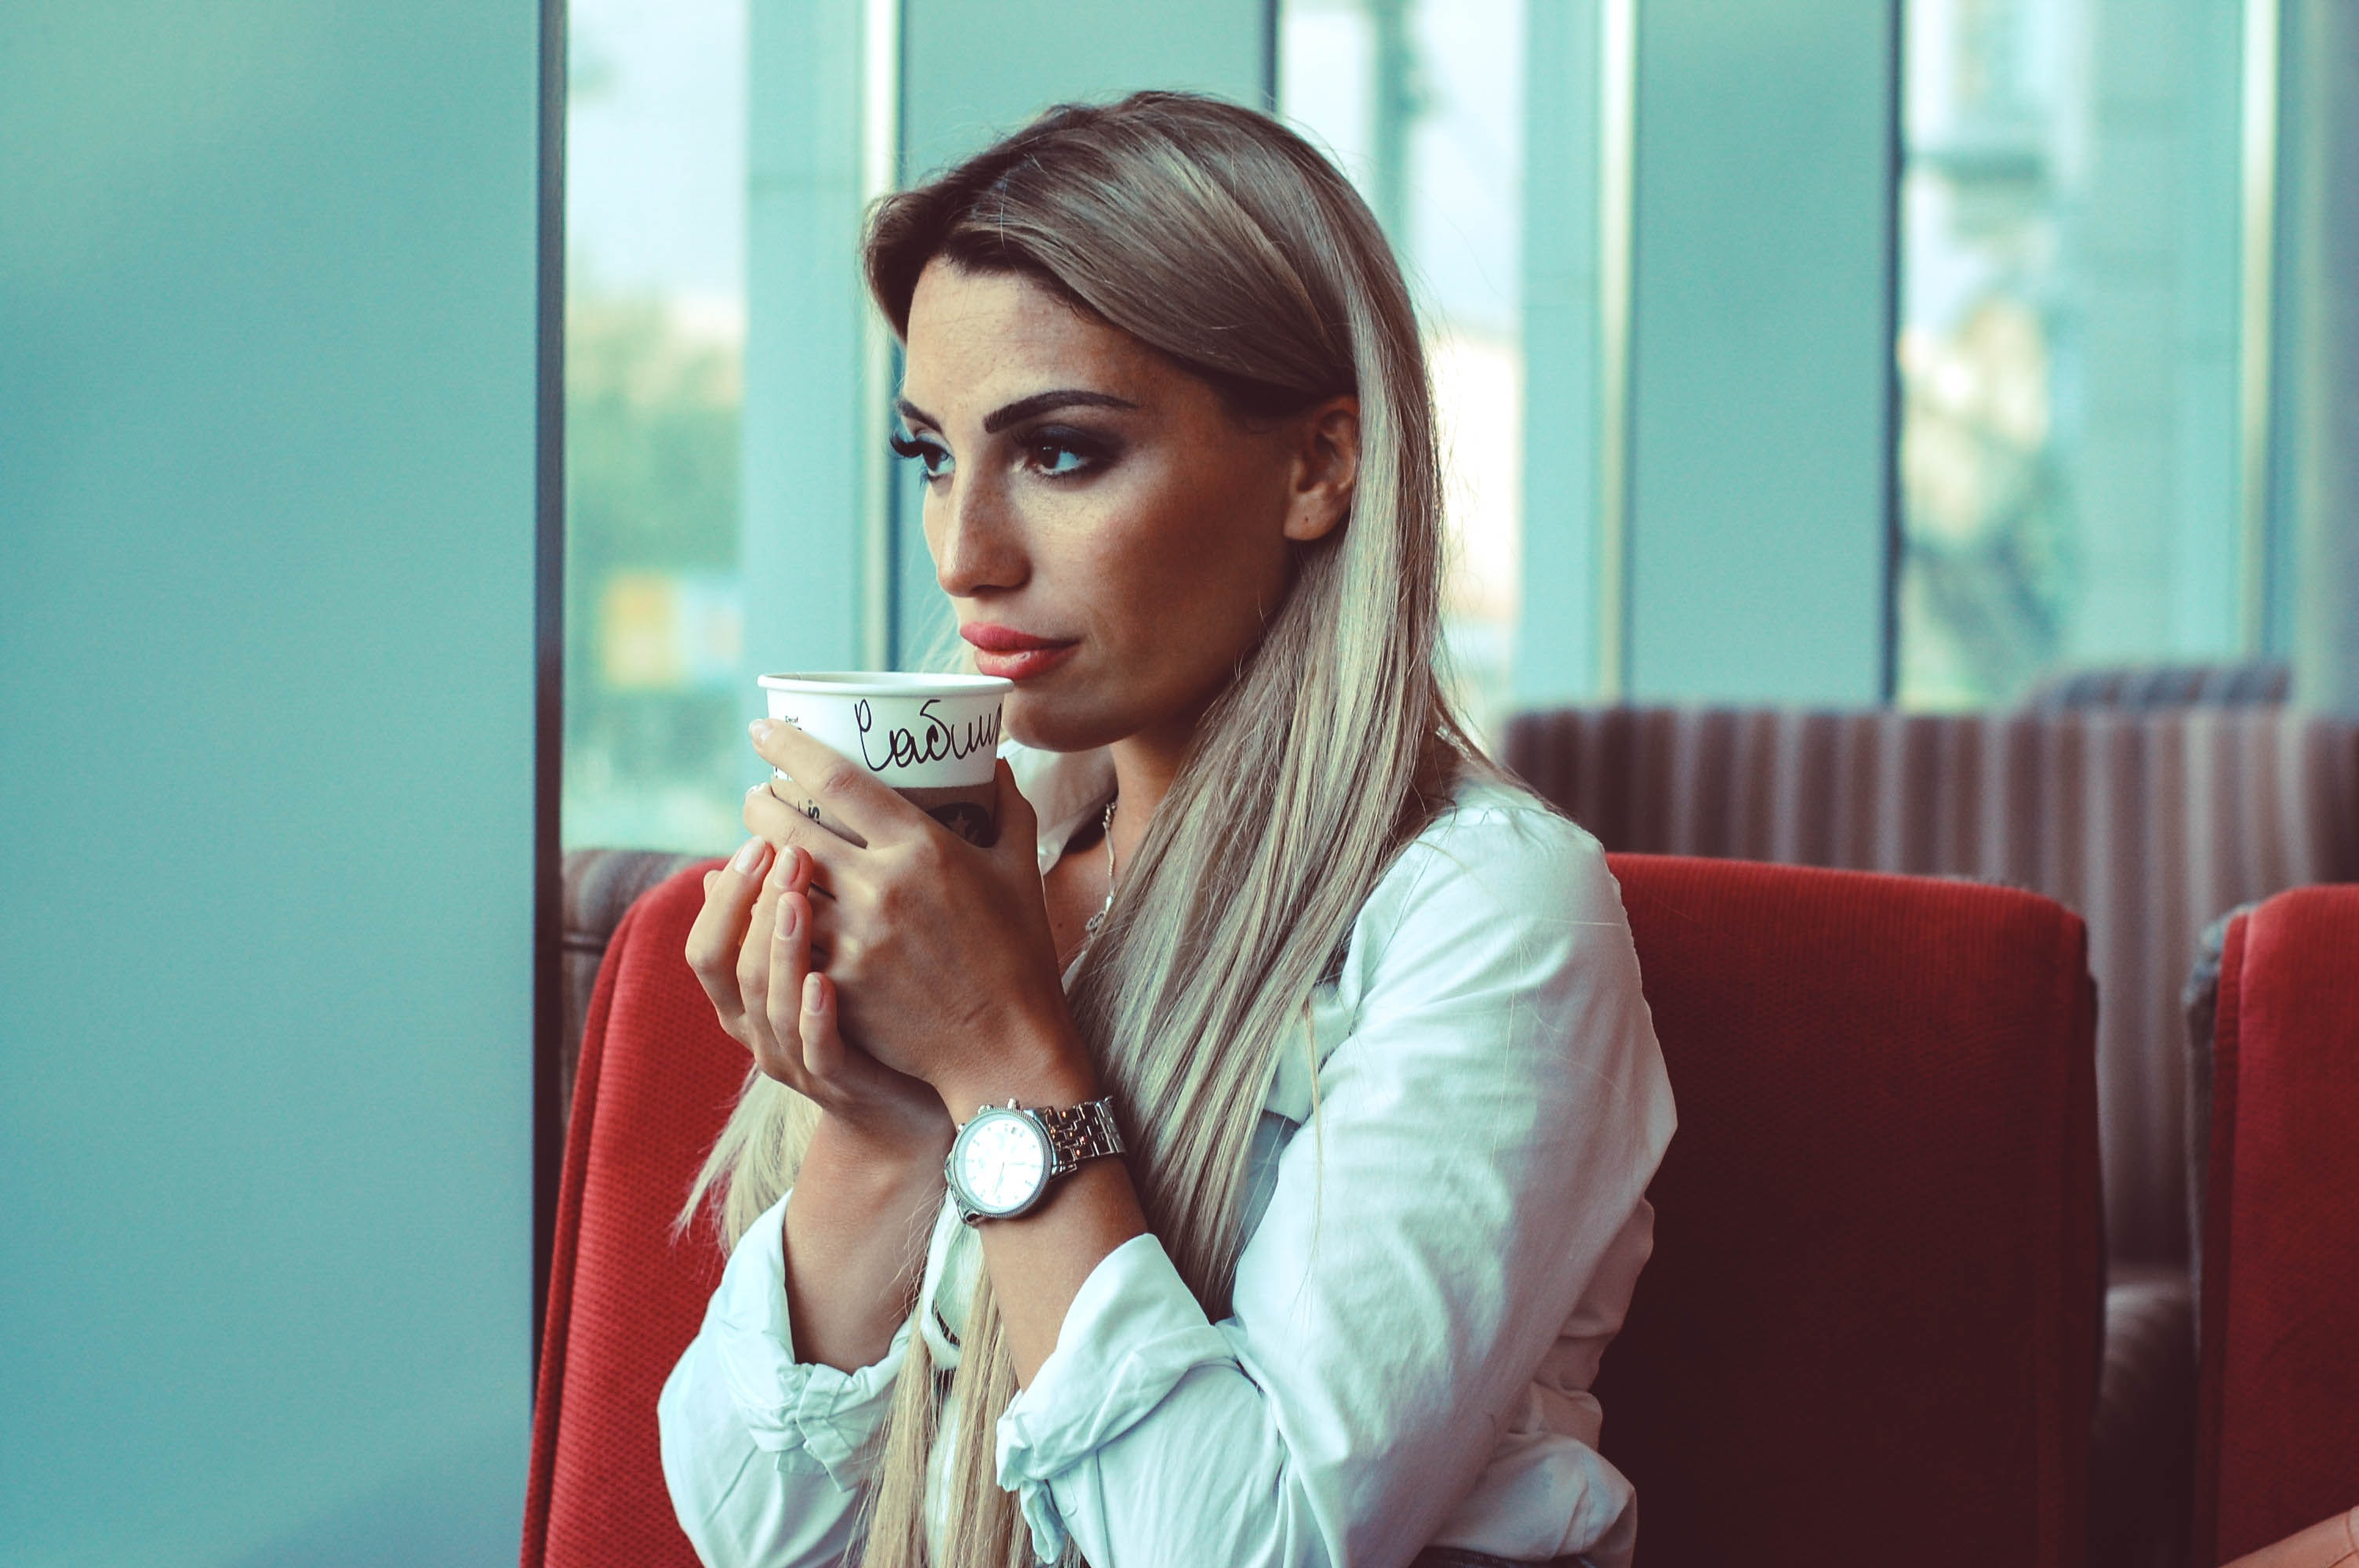 women sitting on chair holding cup of coffee